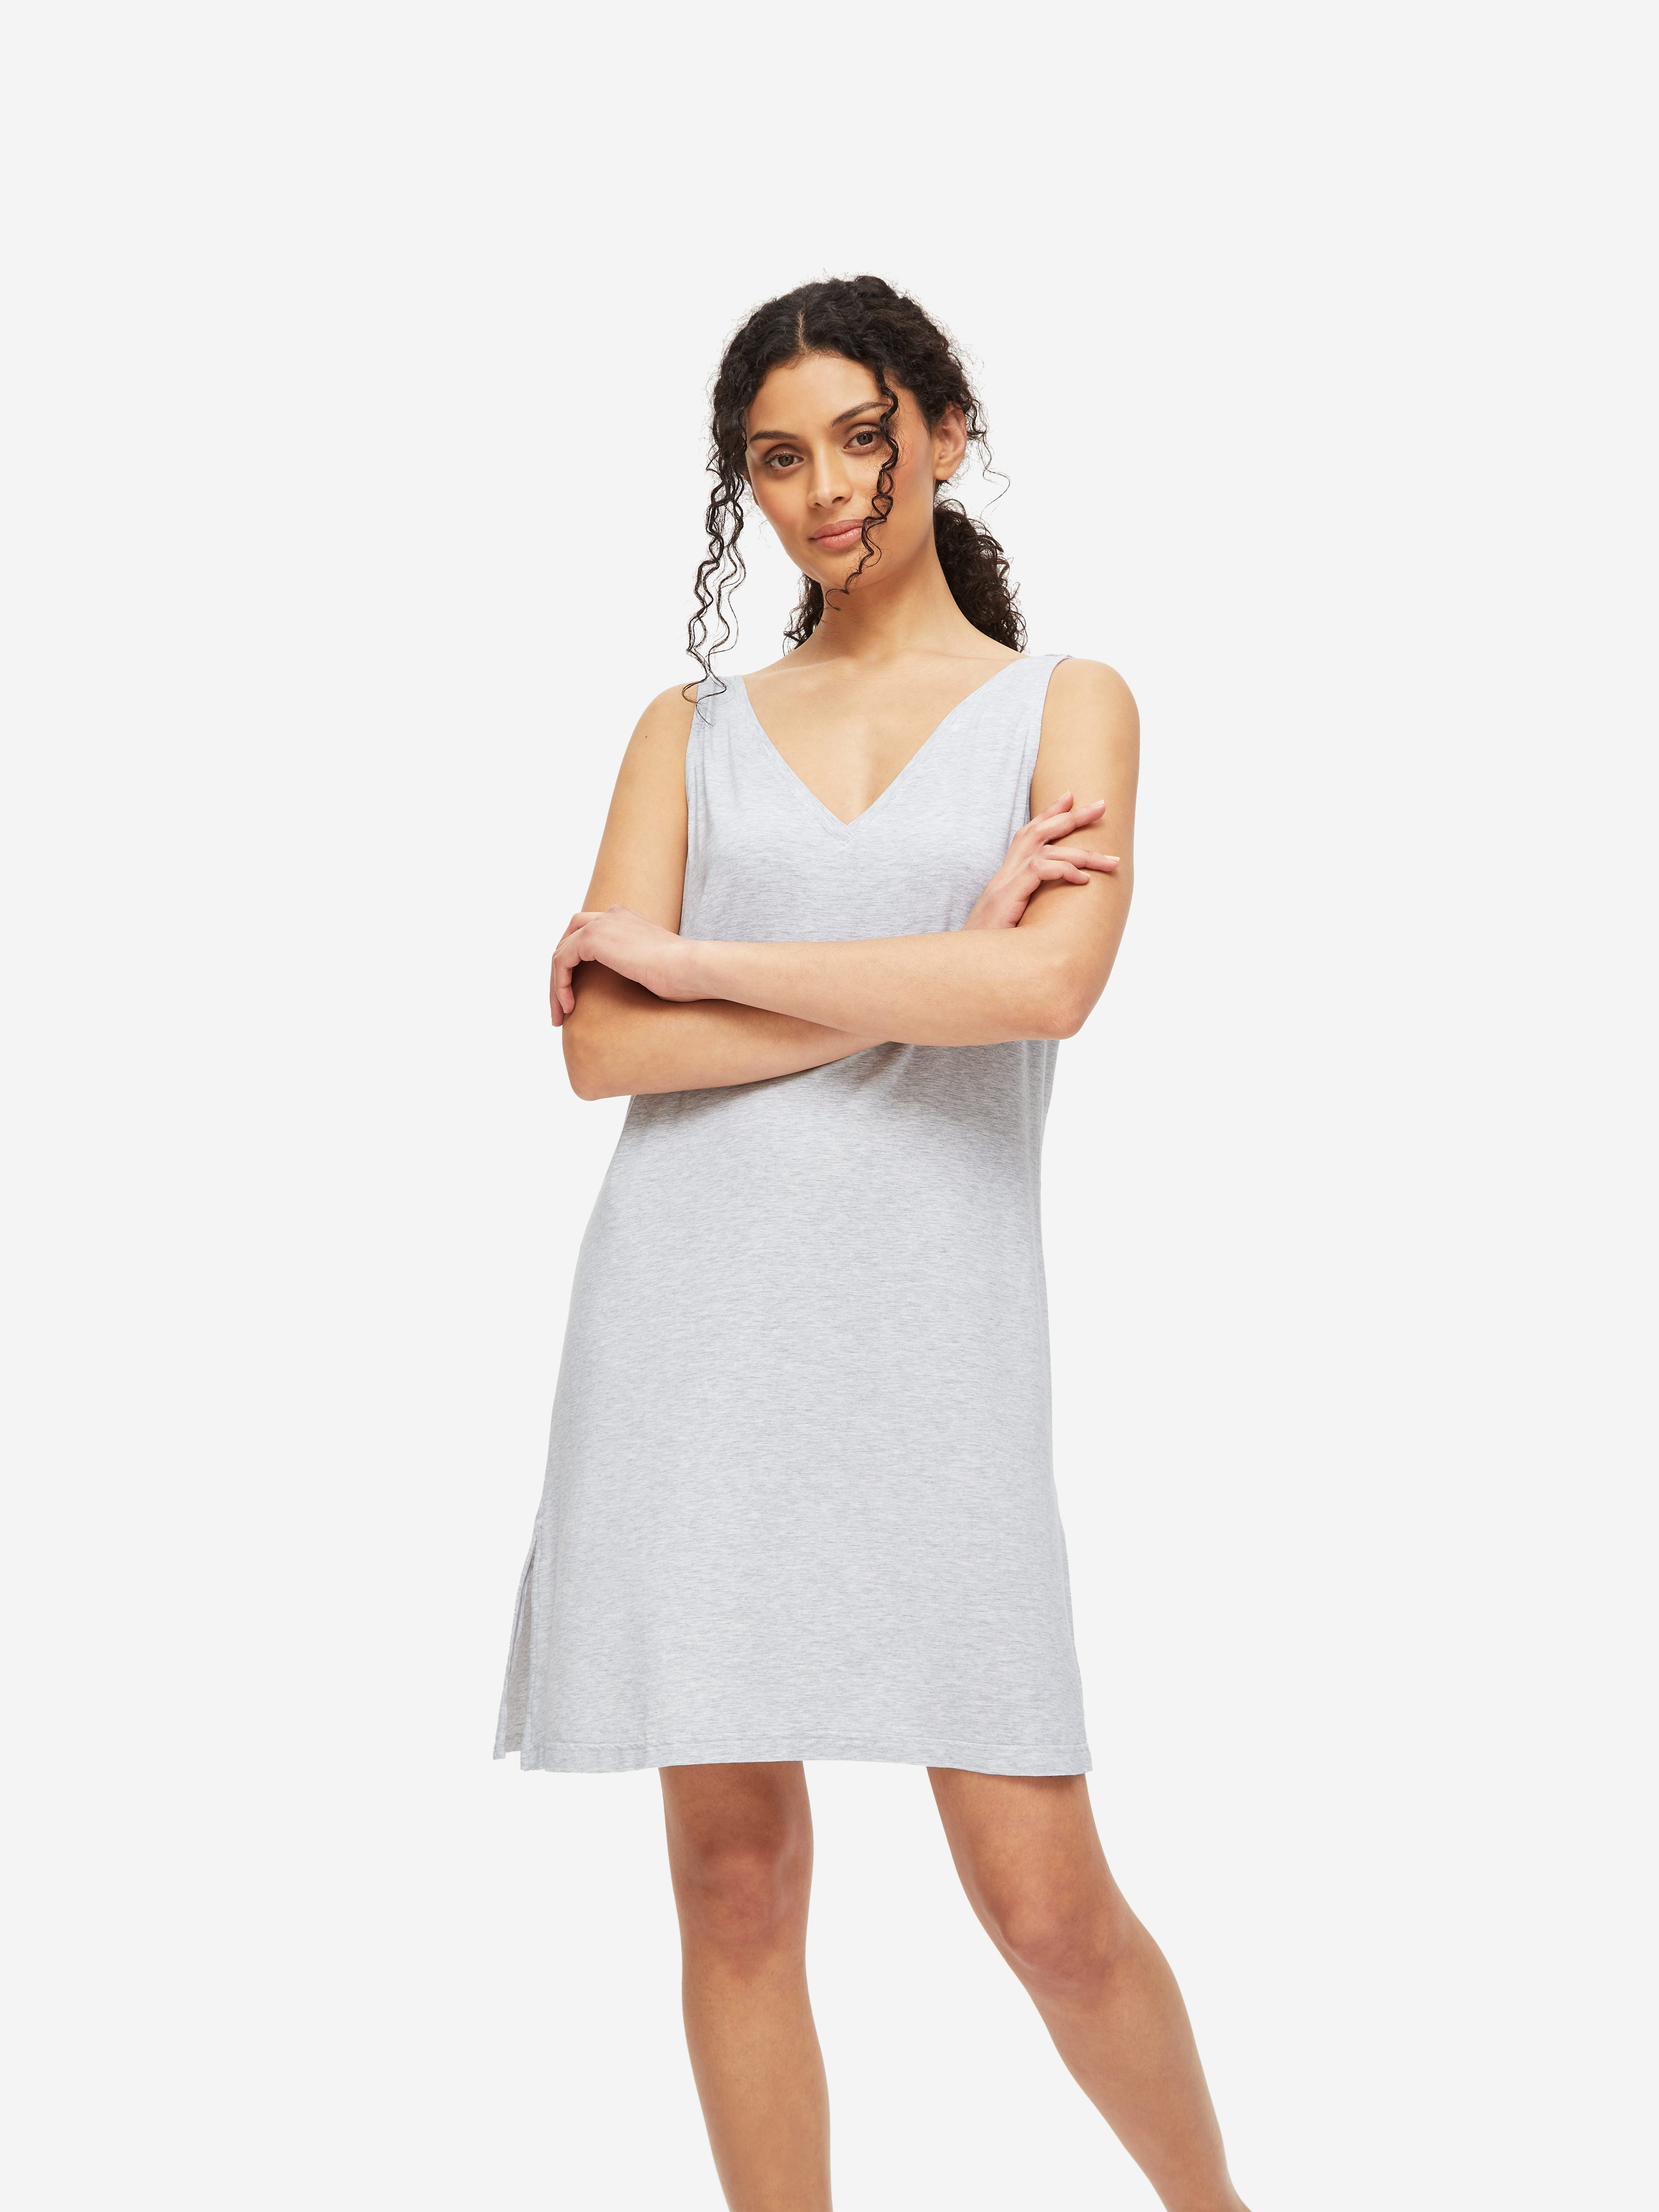 Women's Chemise Ethan Micro Modal Stretch Silver